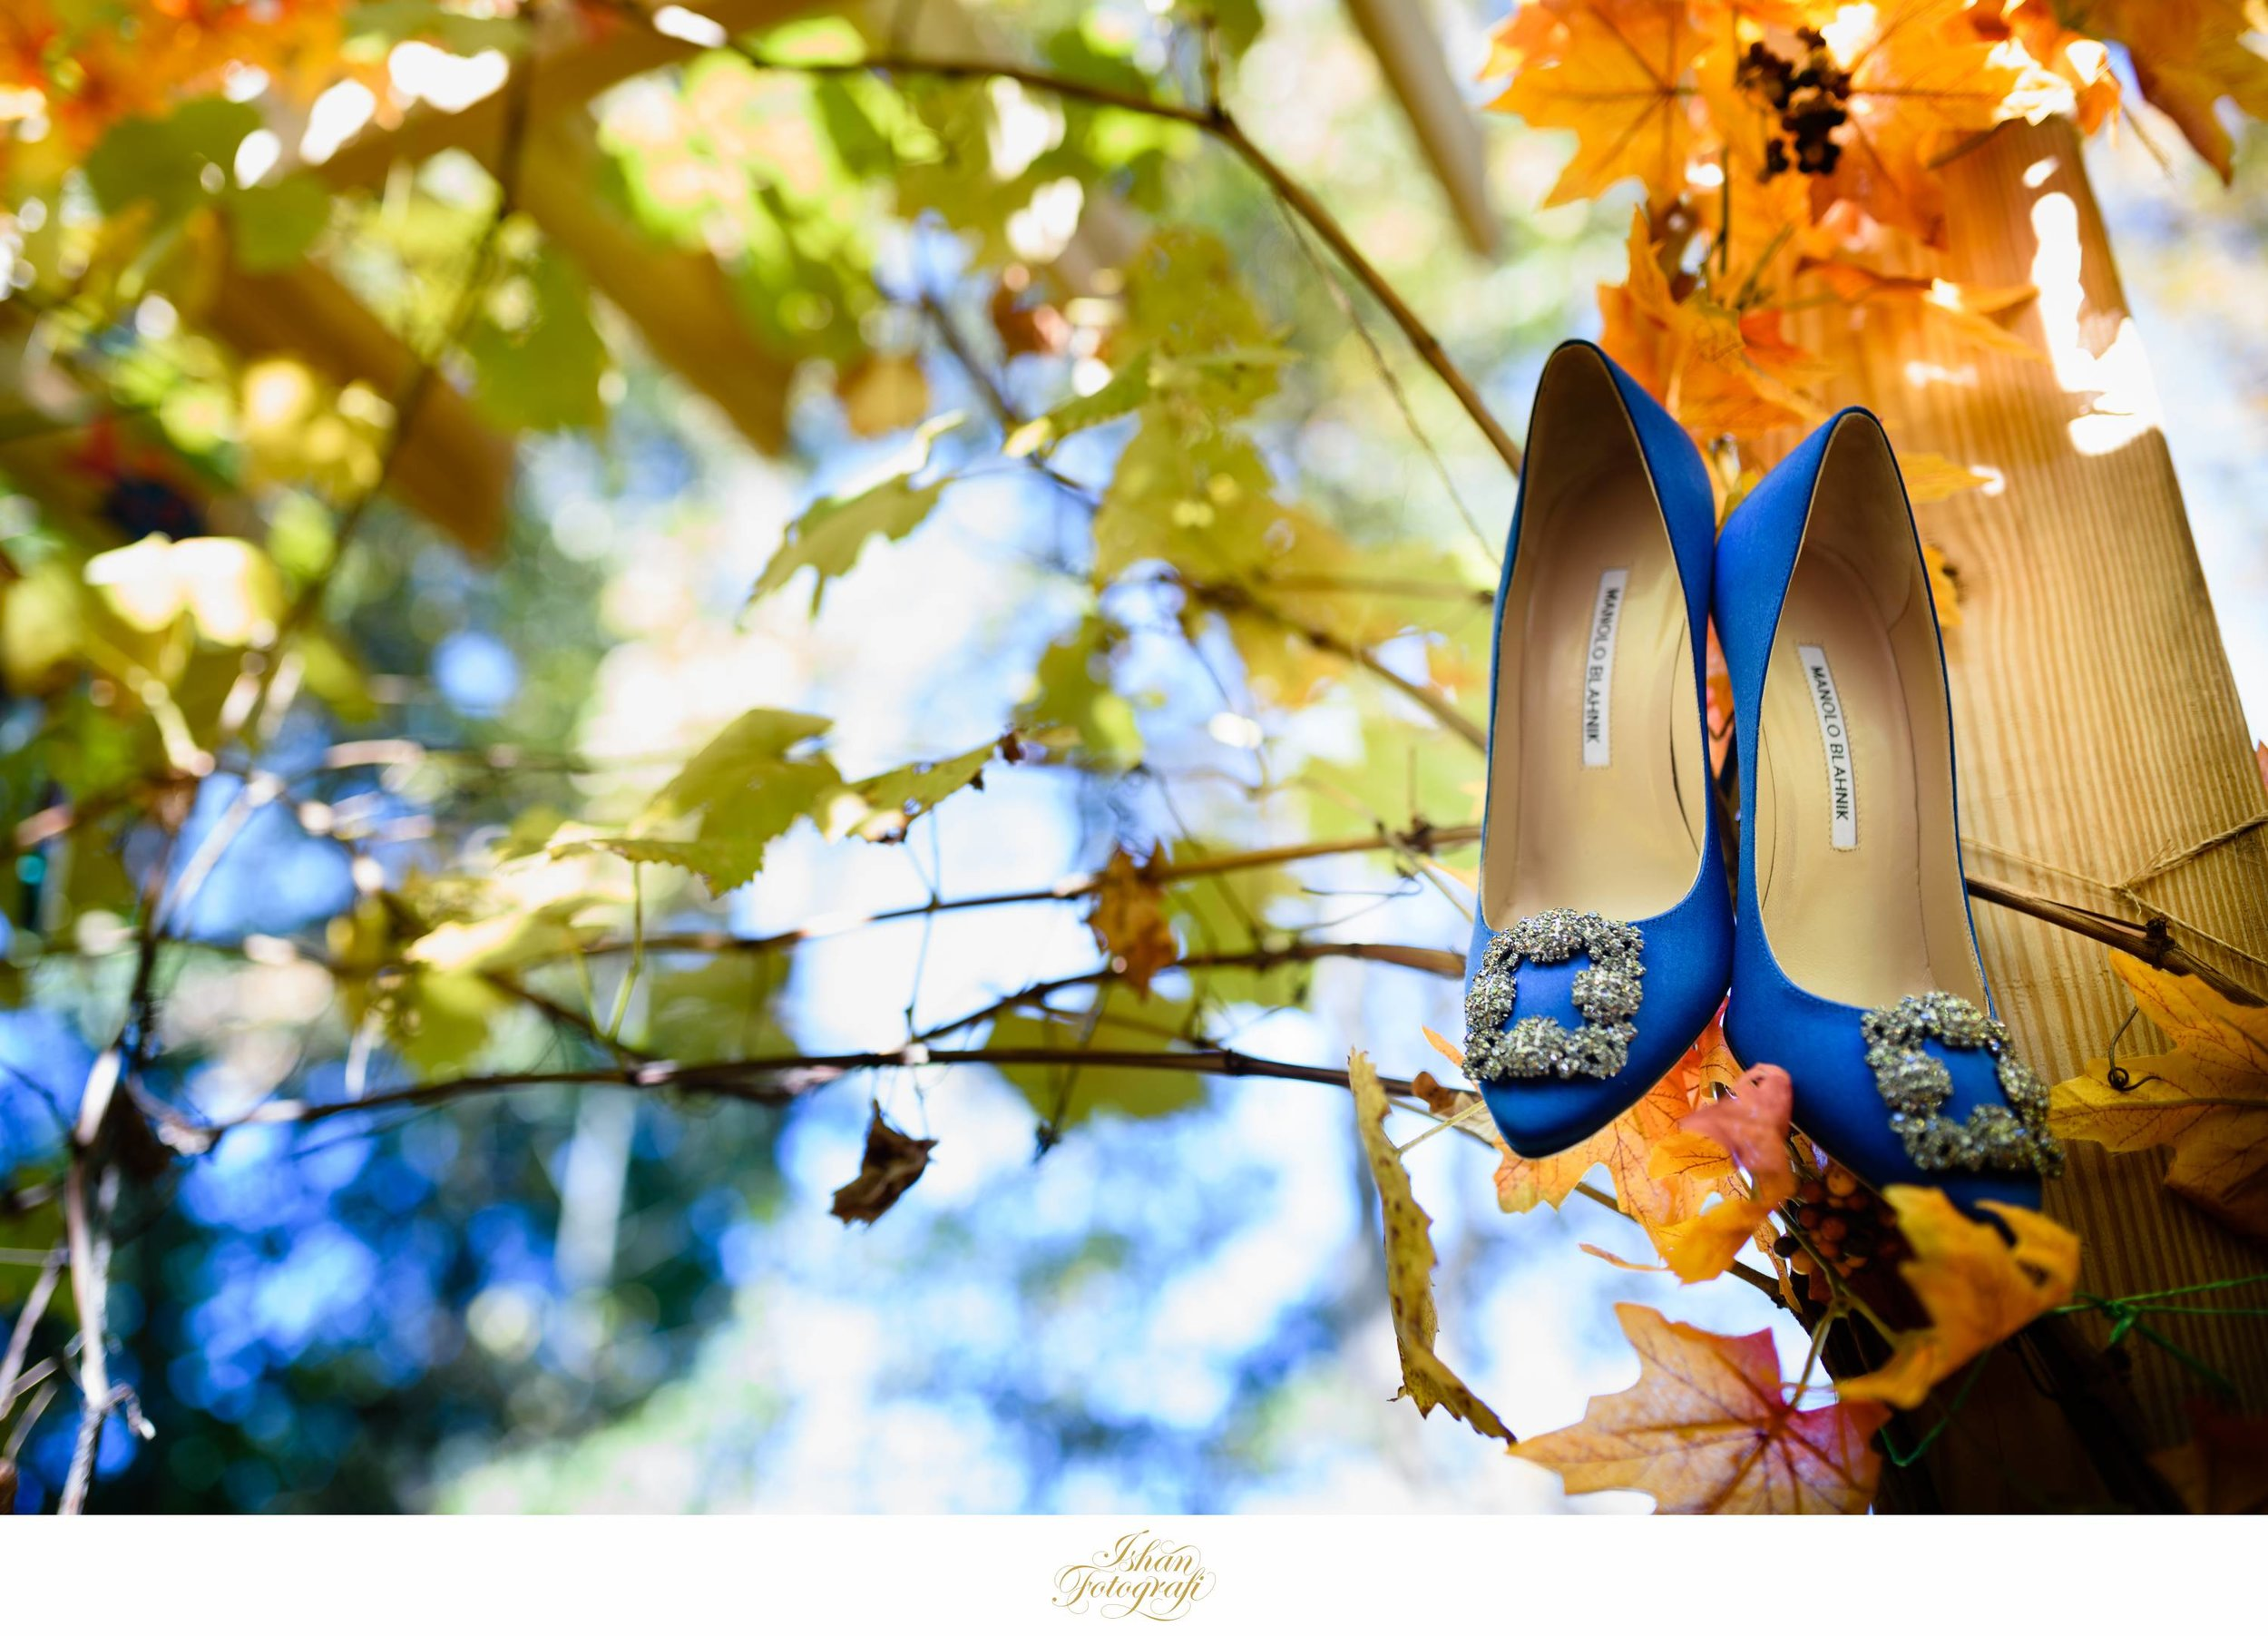 Our bride chose to pair her Elie Saab wedding gown with these stunning Manolo Blahnik blue pumps. Photographing wedding details is our theme at  Ishan Fotografi.  We photographed our bride's wedding details in her backyard. Absolutely pretty!